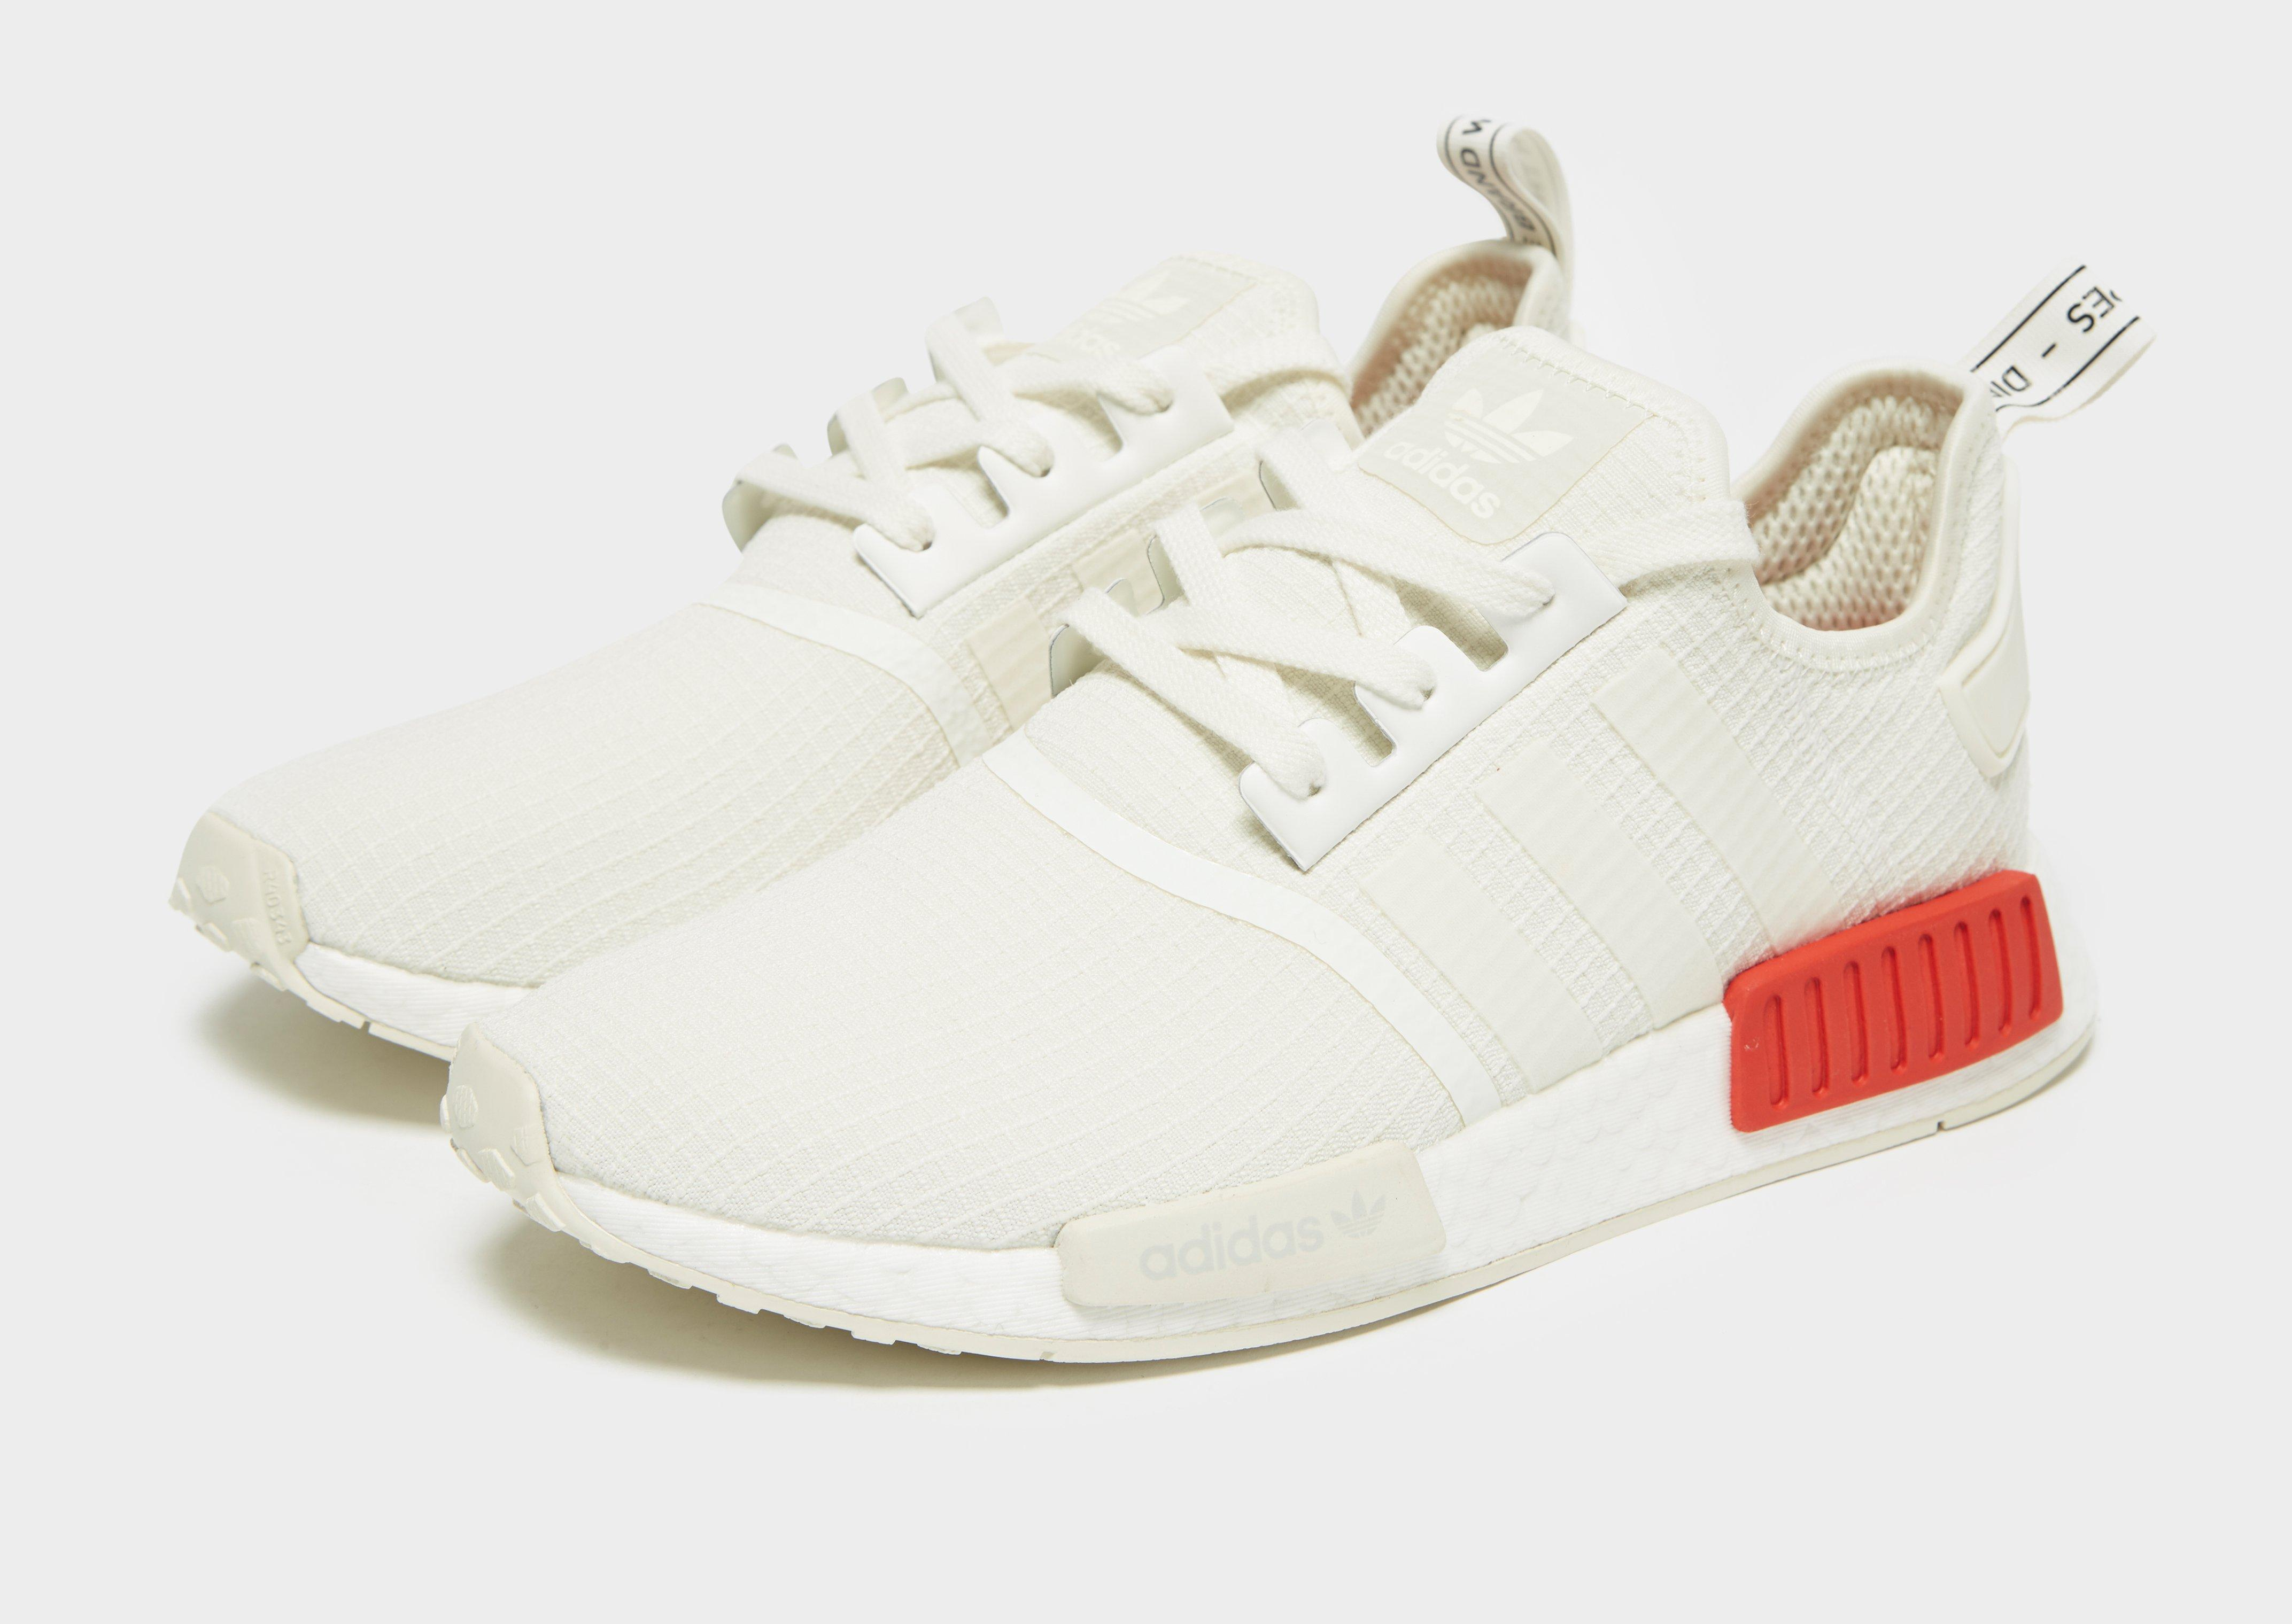 934a7060b Adidas Originals - White Nmd R1 Ripstop for Men - Lyst. View fullscreen